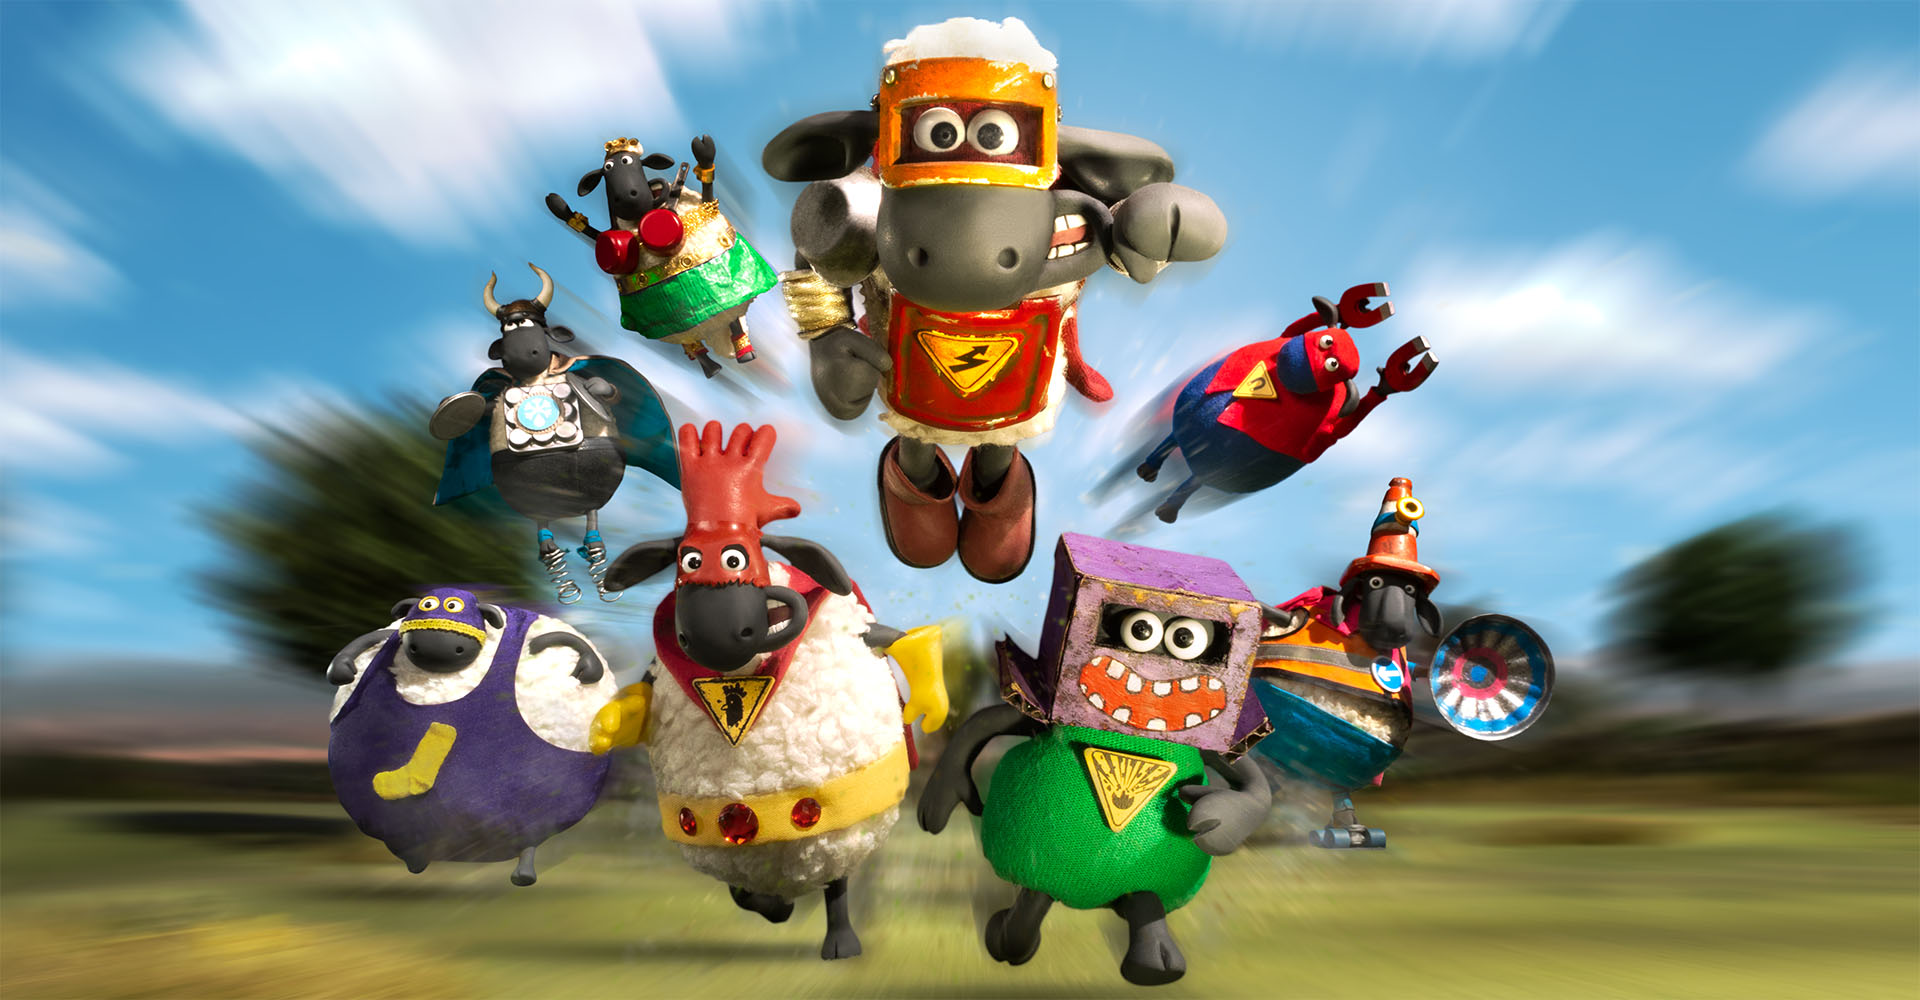 Shaun the Sheep S6